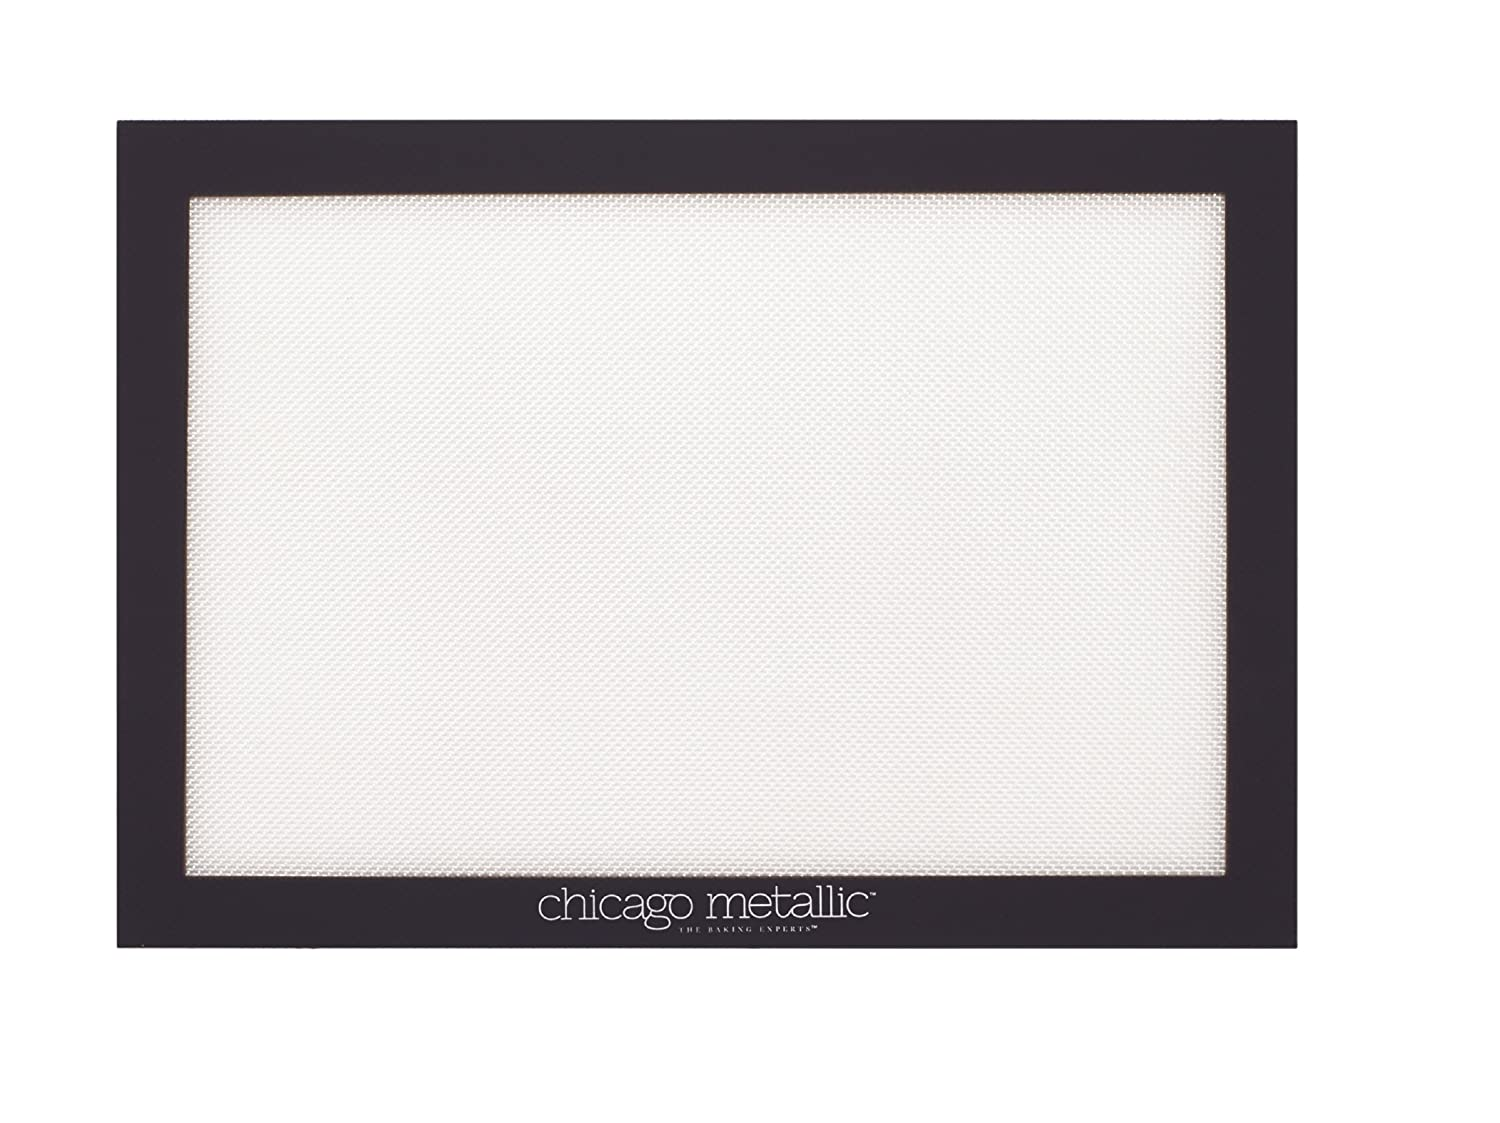 Chicago Metallic Silicone Pastry Mat with Measurements 5211022